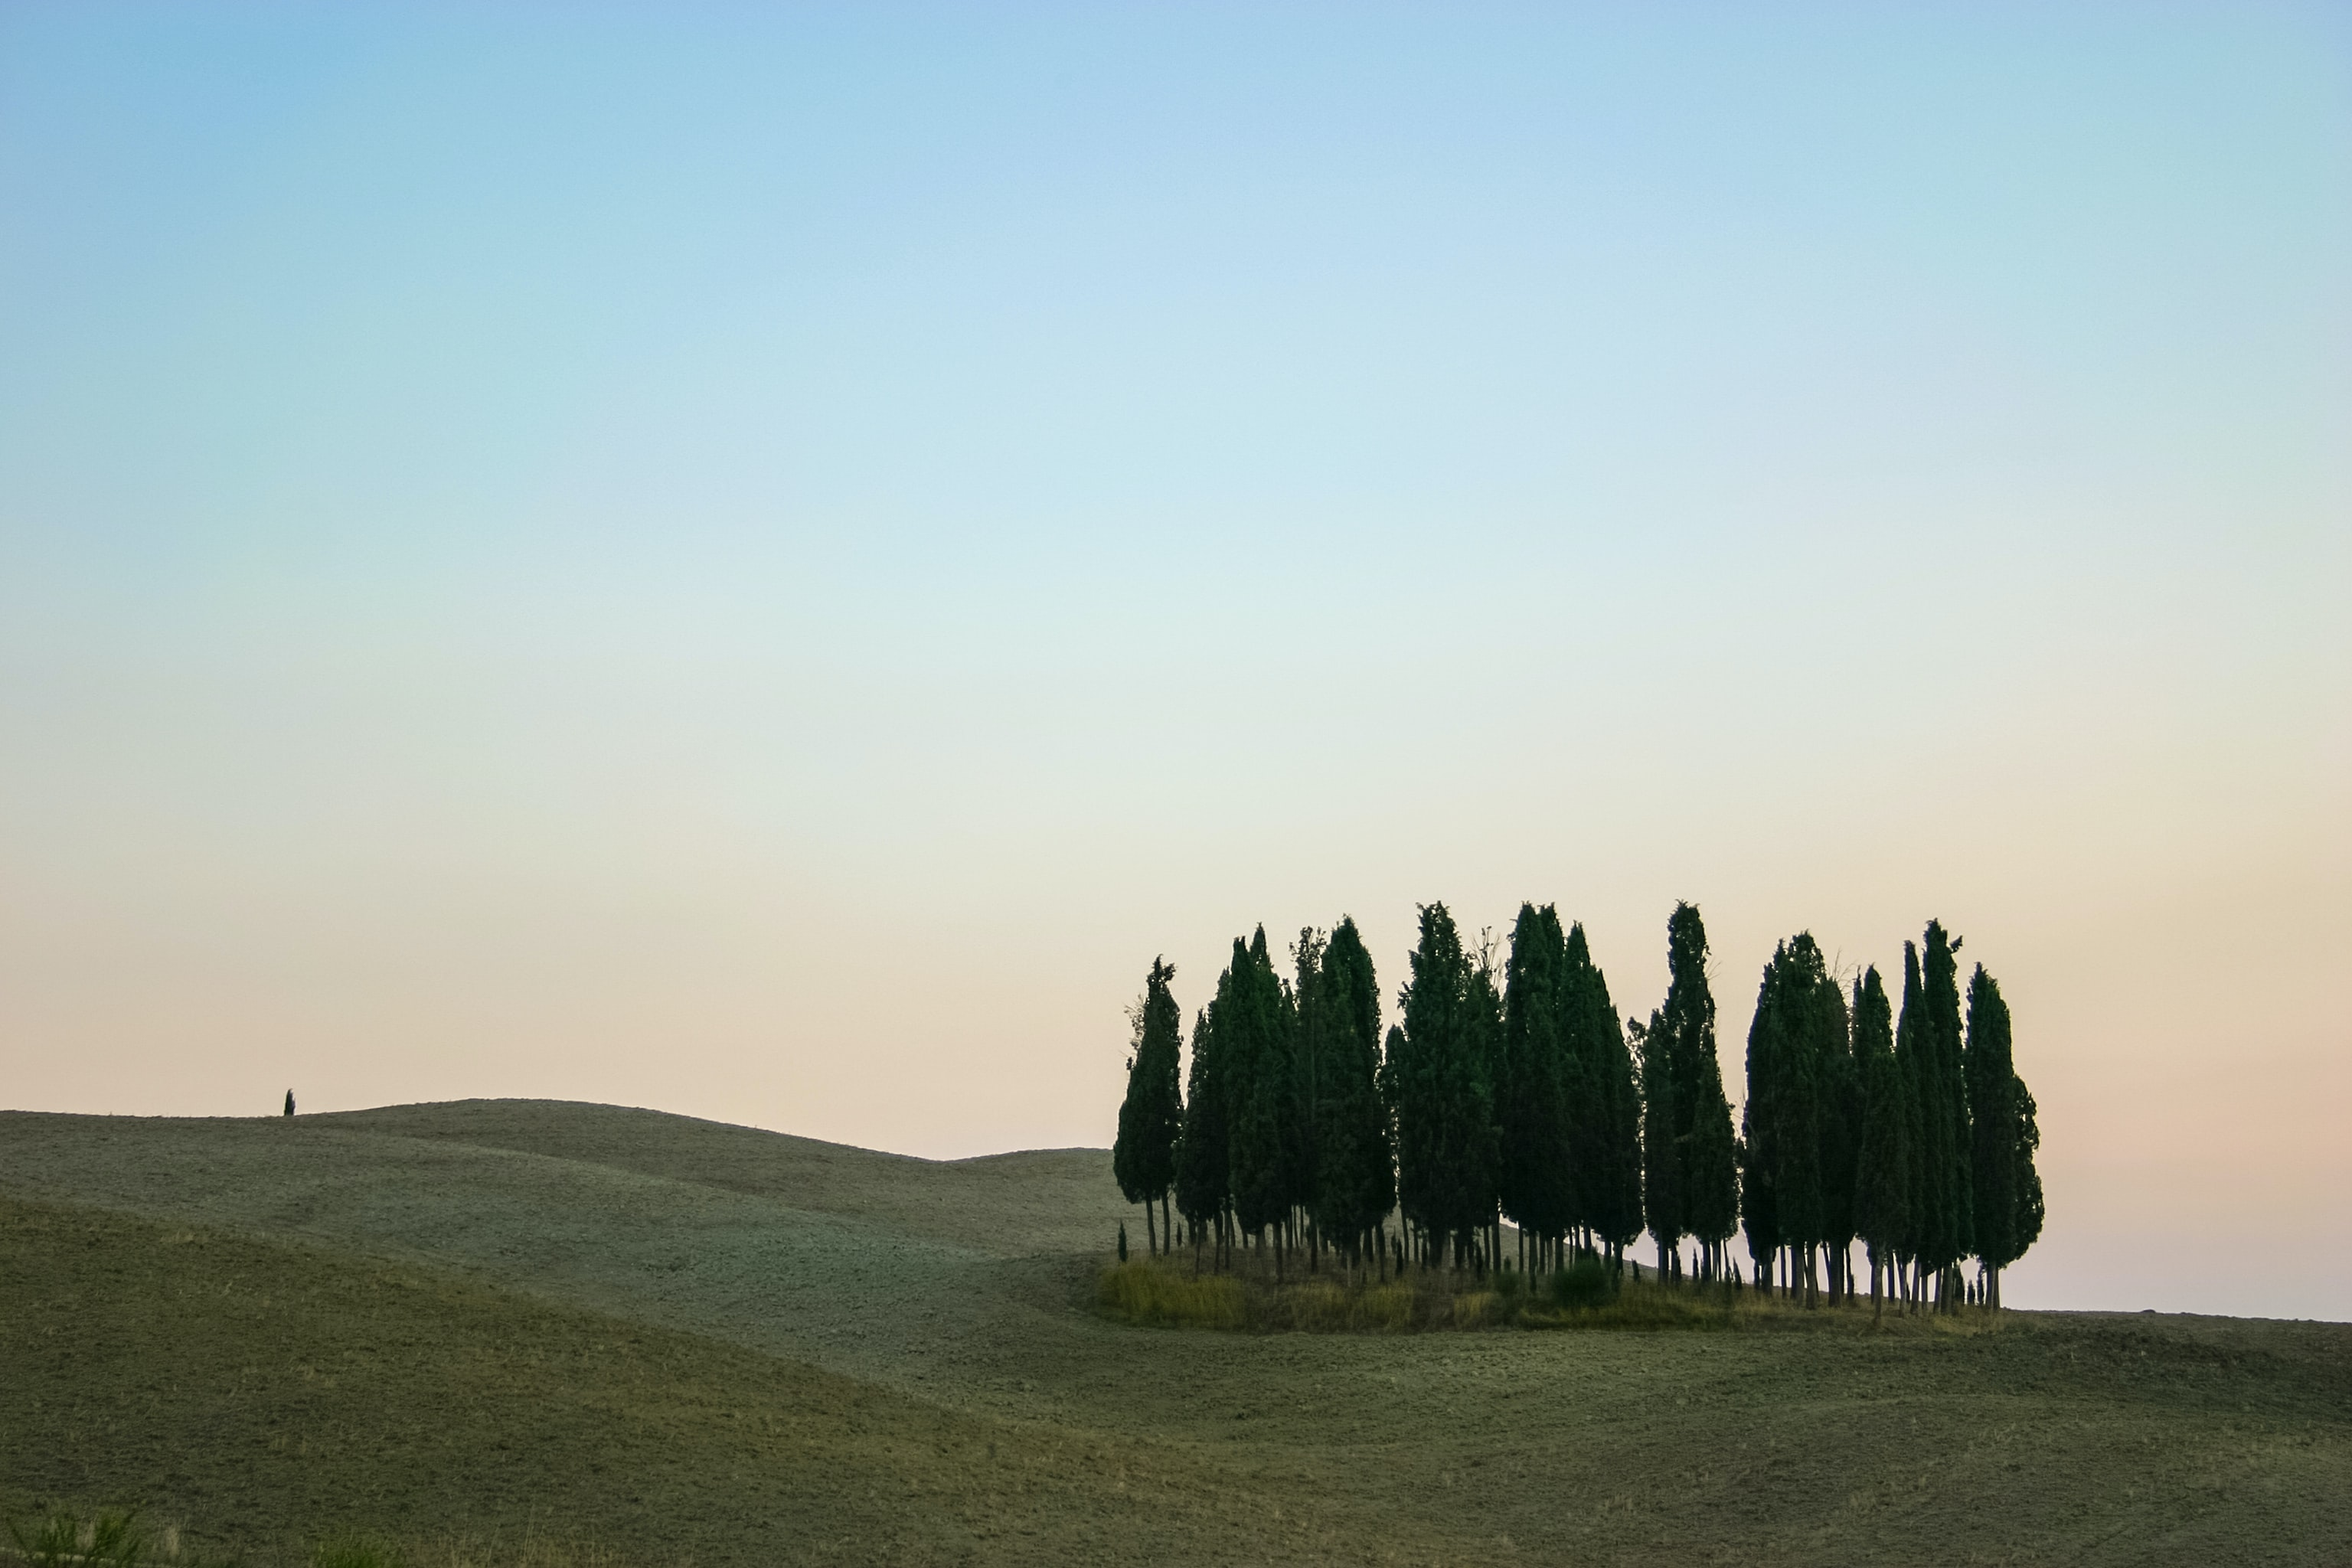 pine trees on hill